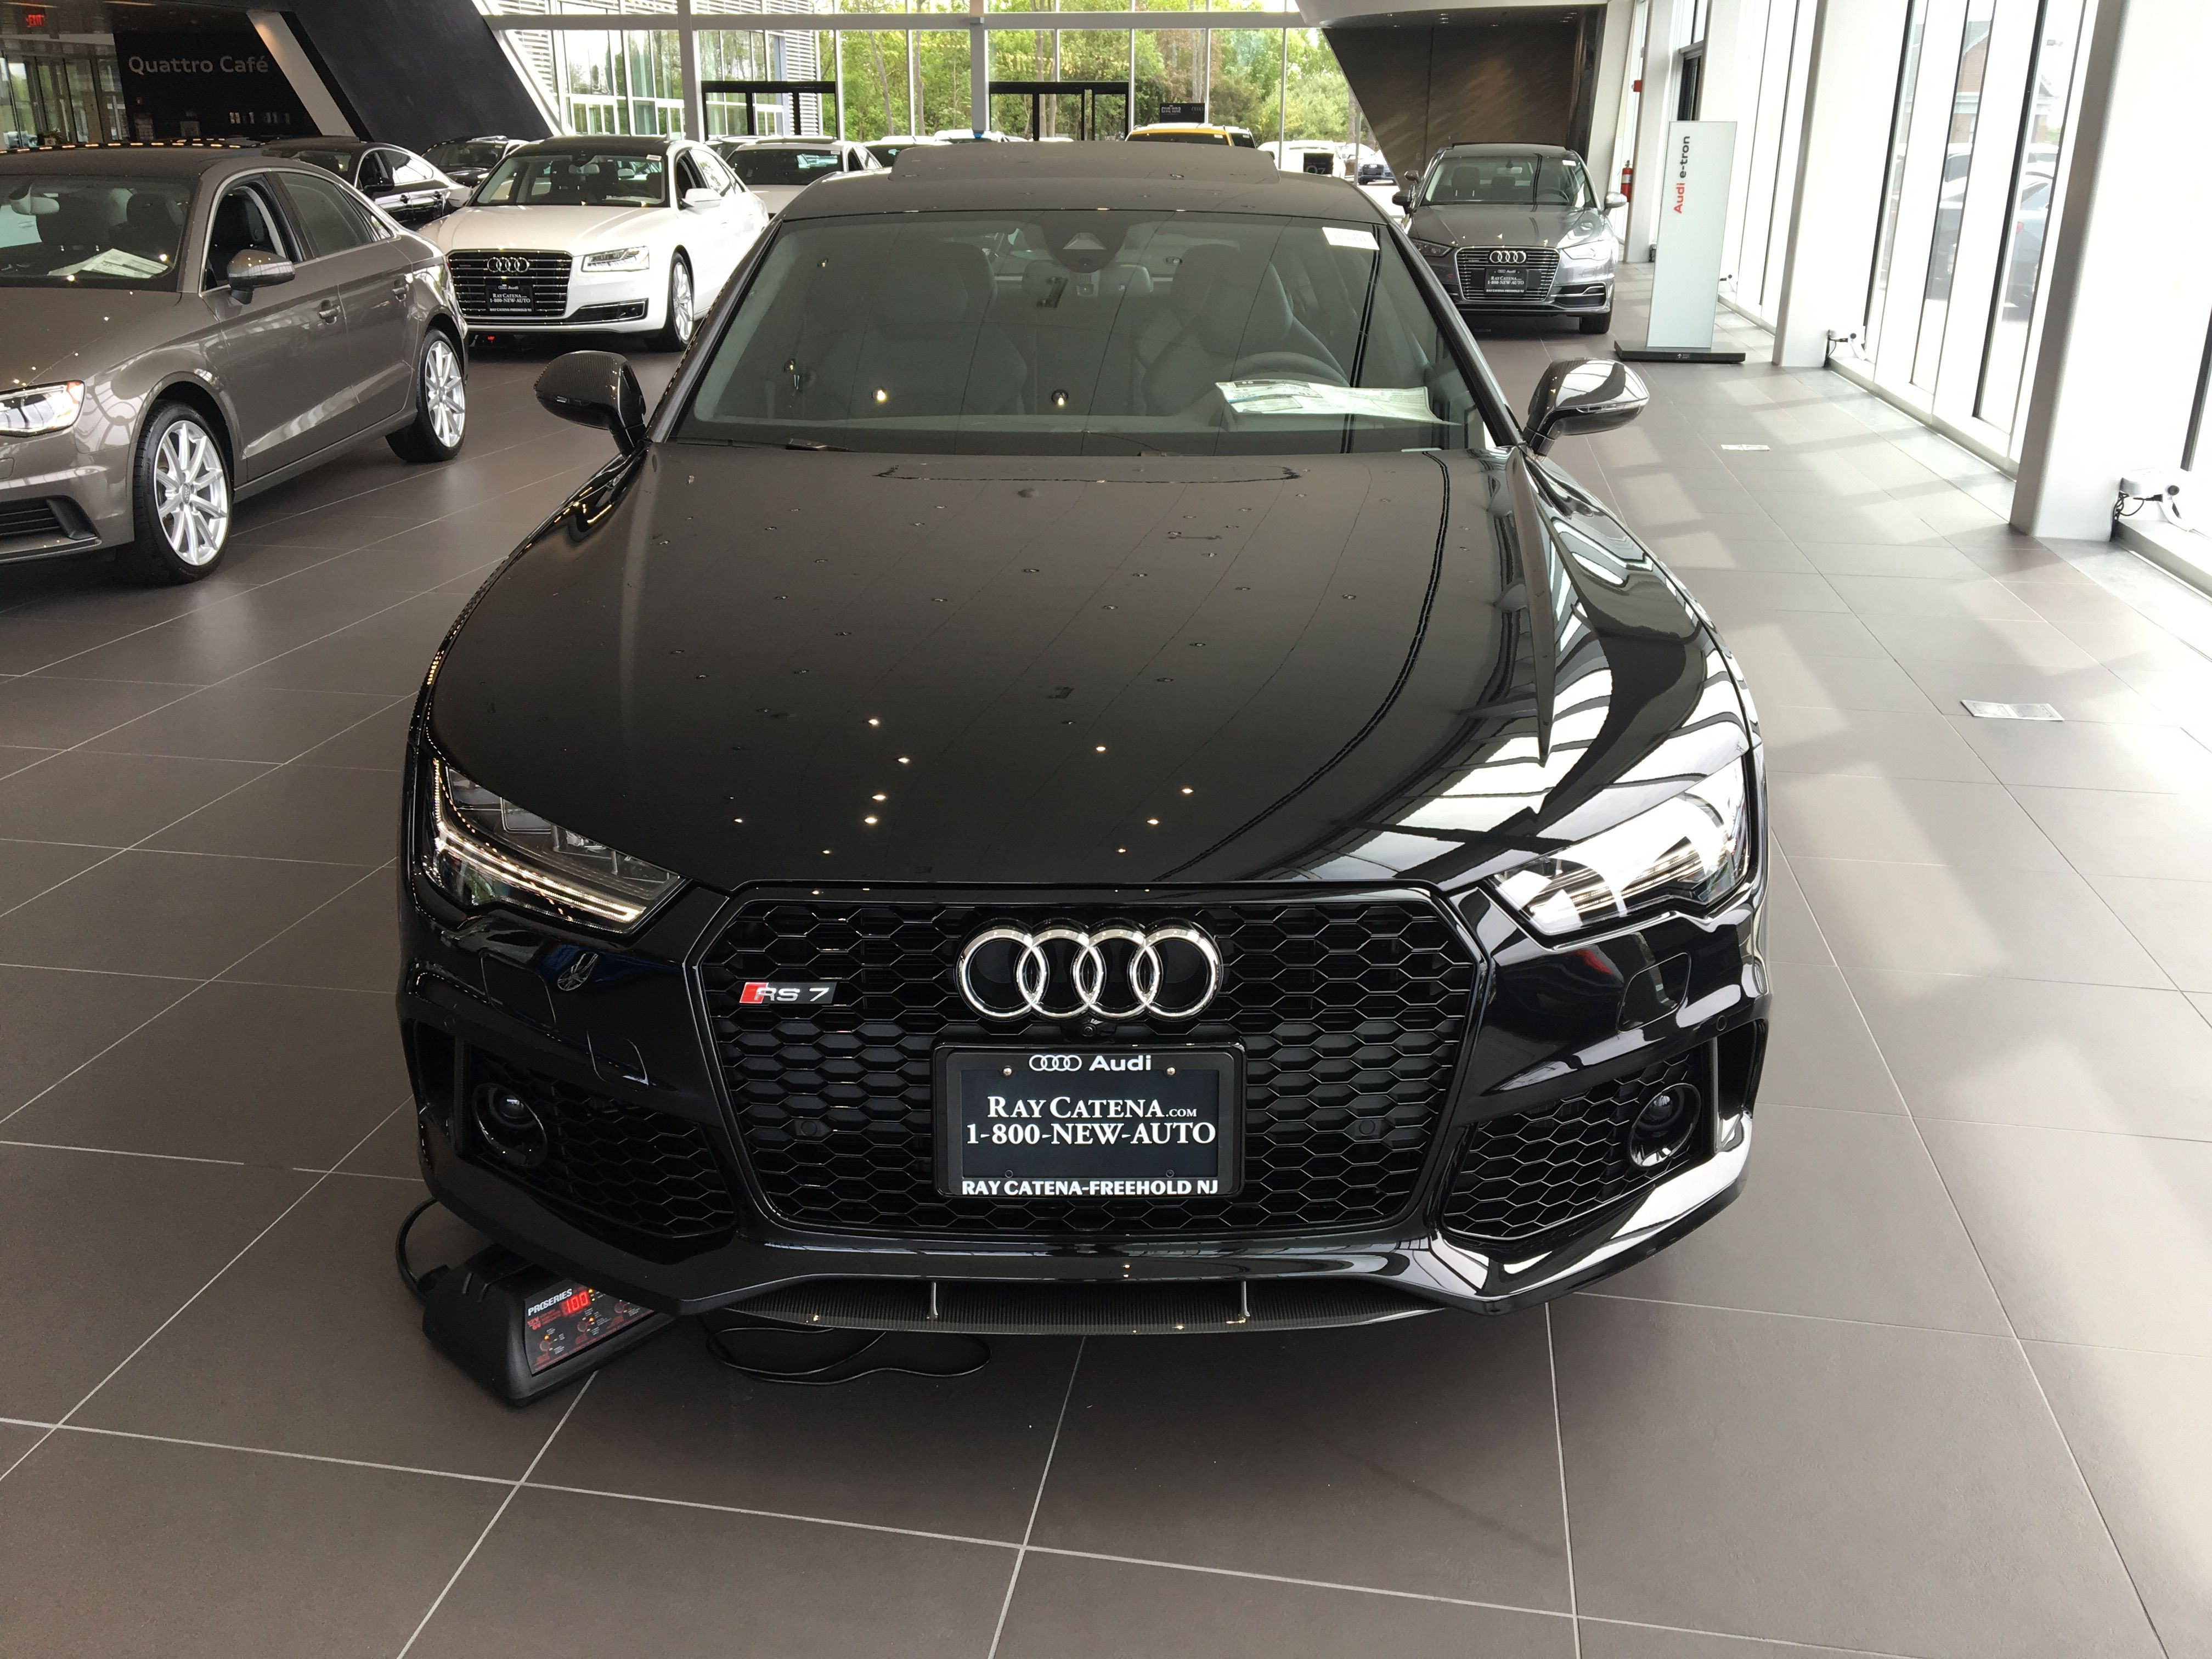 Car And Driver Reviews The Audi Rs7 Performance Cheap Cars For Sale Cars For Sale Luxury Cars For Sale